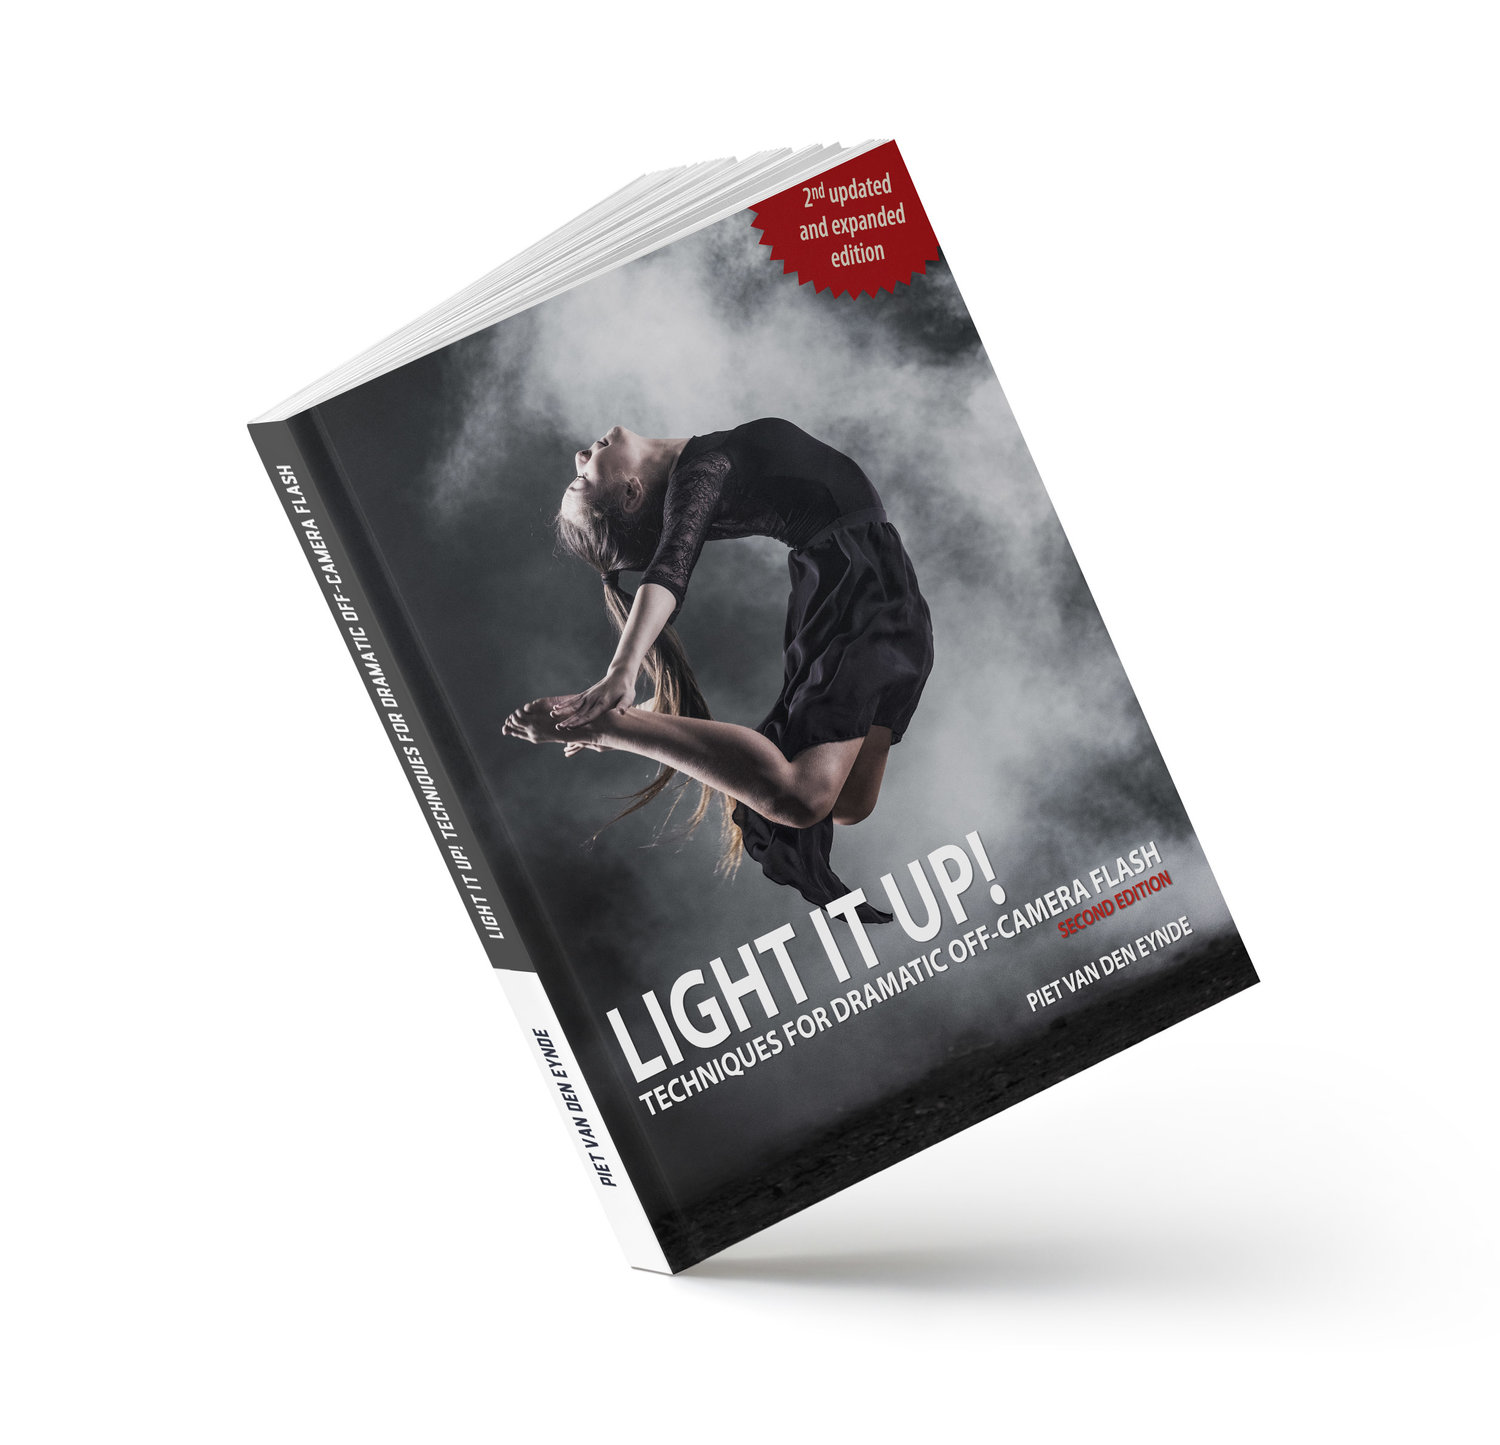 Copy of Light It Up! Techniques for Dramatic Off-Camera Flash. 180 page PDF eBook.